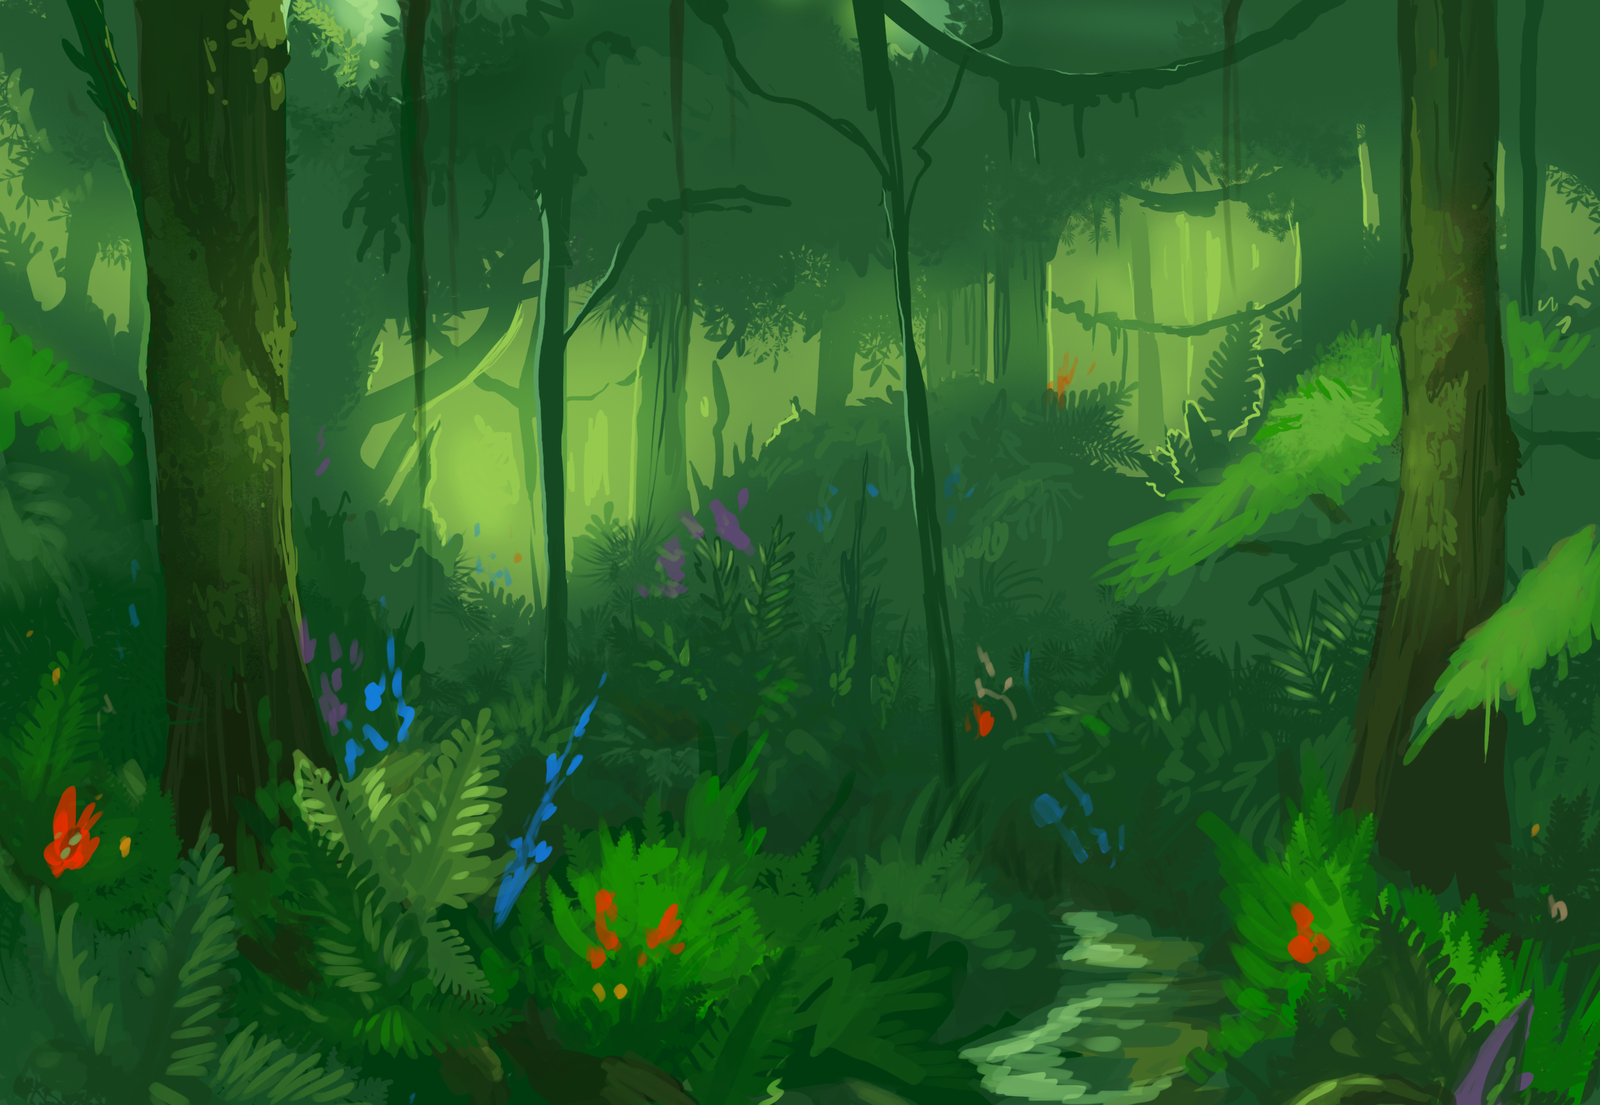 Drawn rainforest digital painting Rainforest by Study Study by